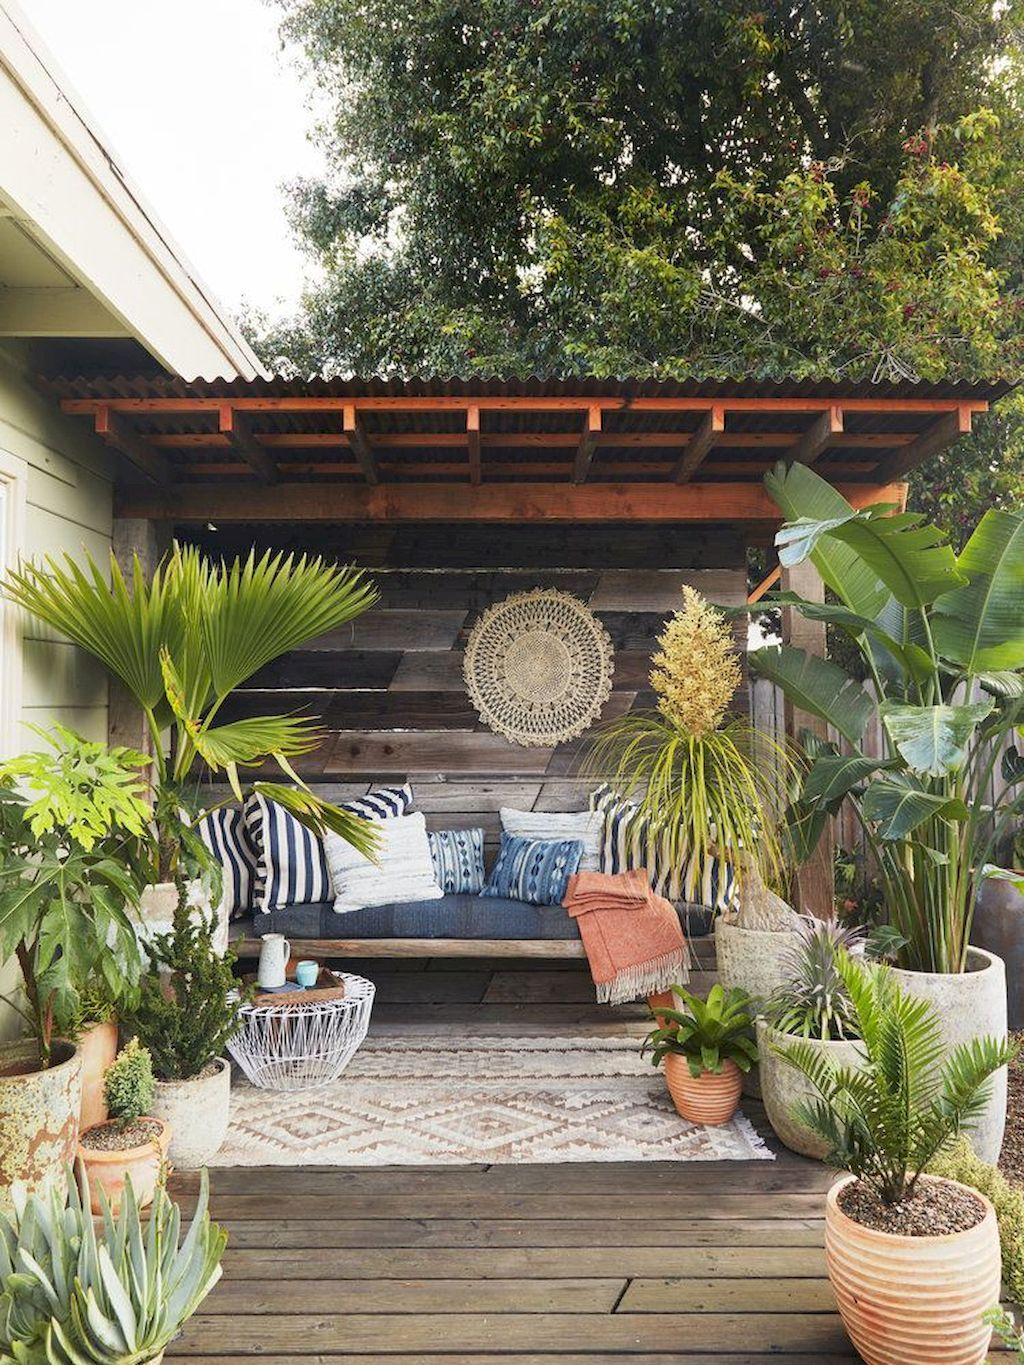 Amazing Outdoor Oasis For Landscape Design Home To Z Outdoor Patio Decor Backyard Seating Backyard Seating Area Backyard oasis ideas this old house